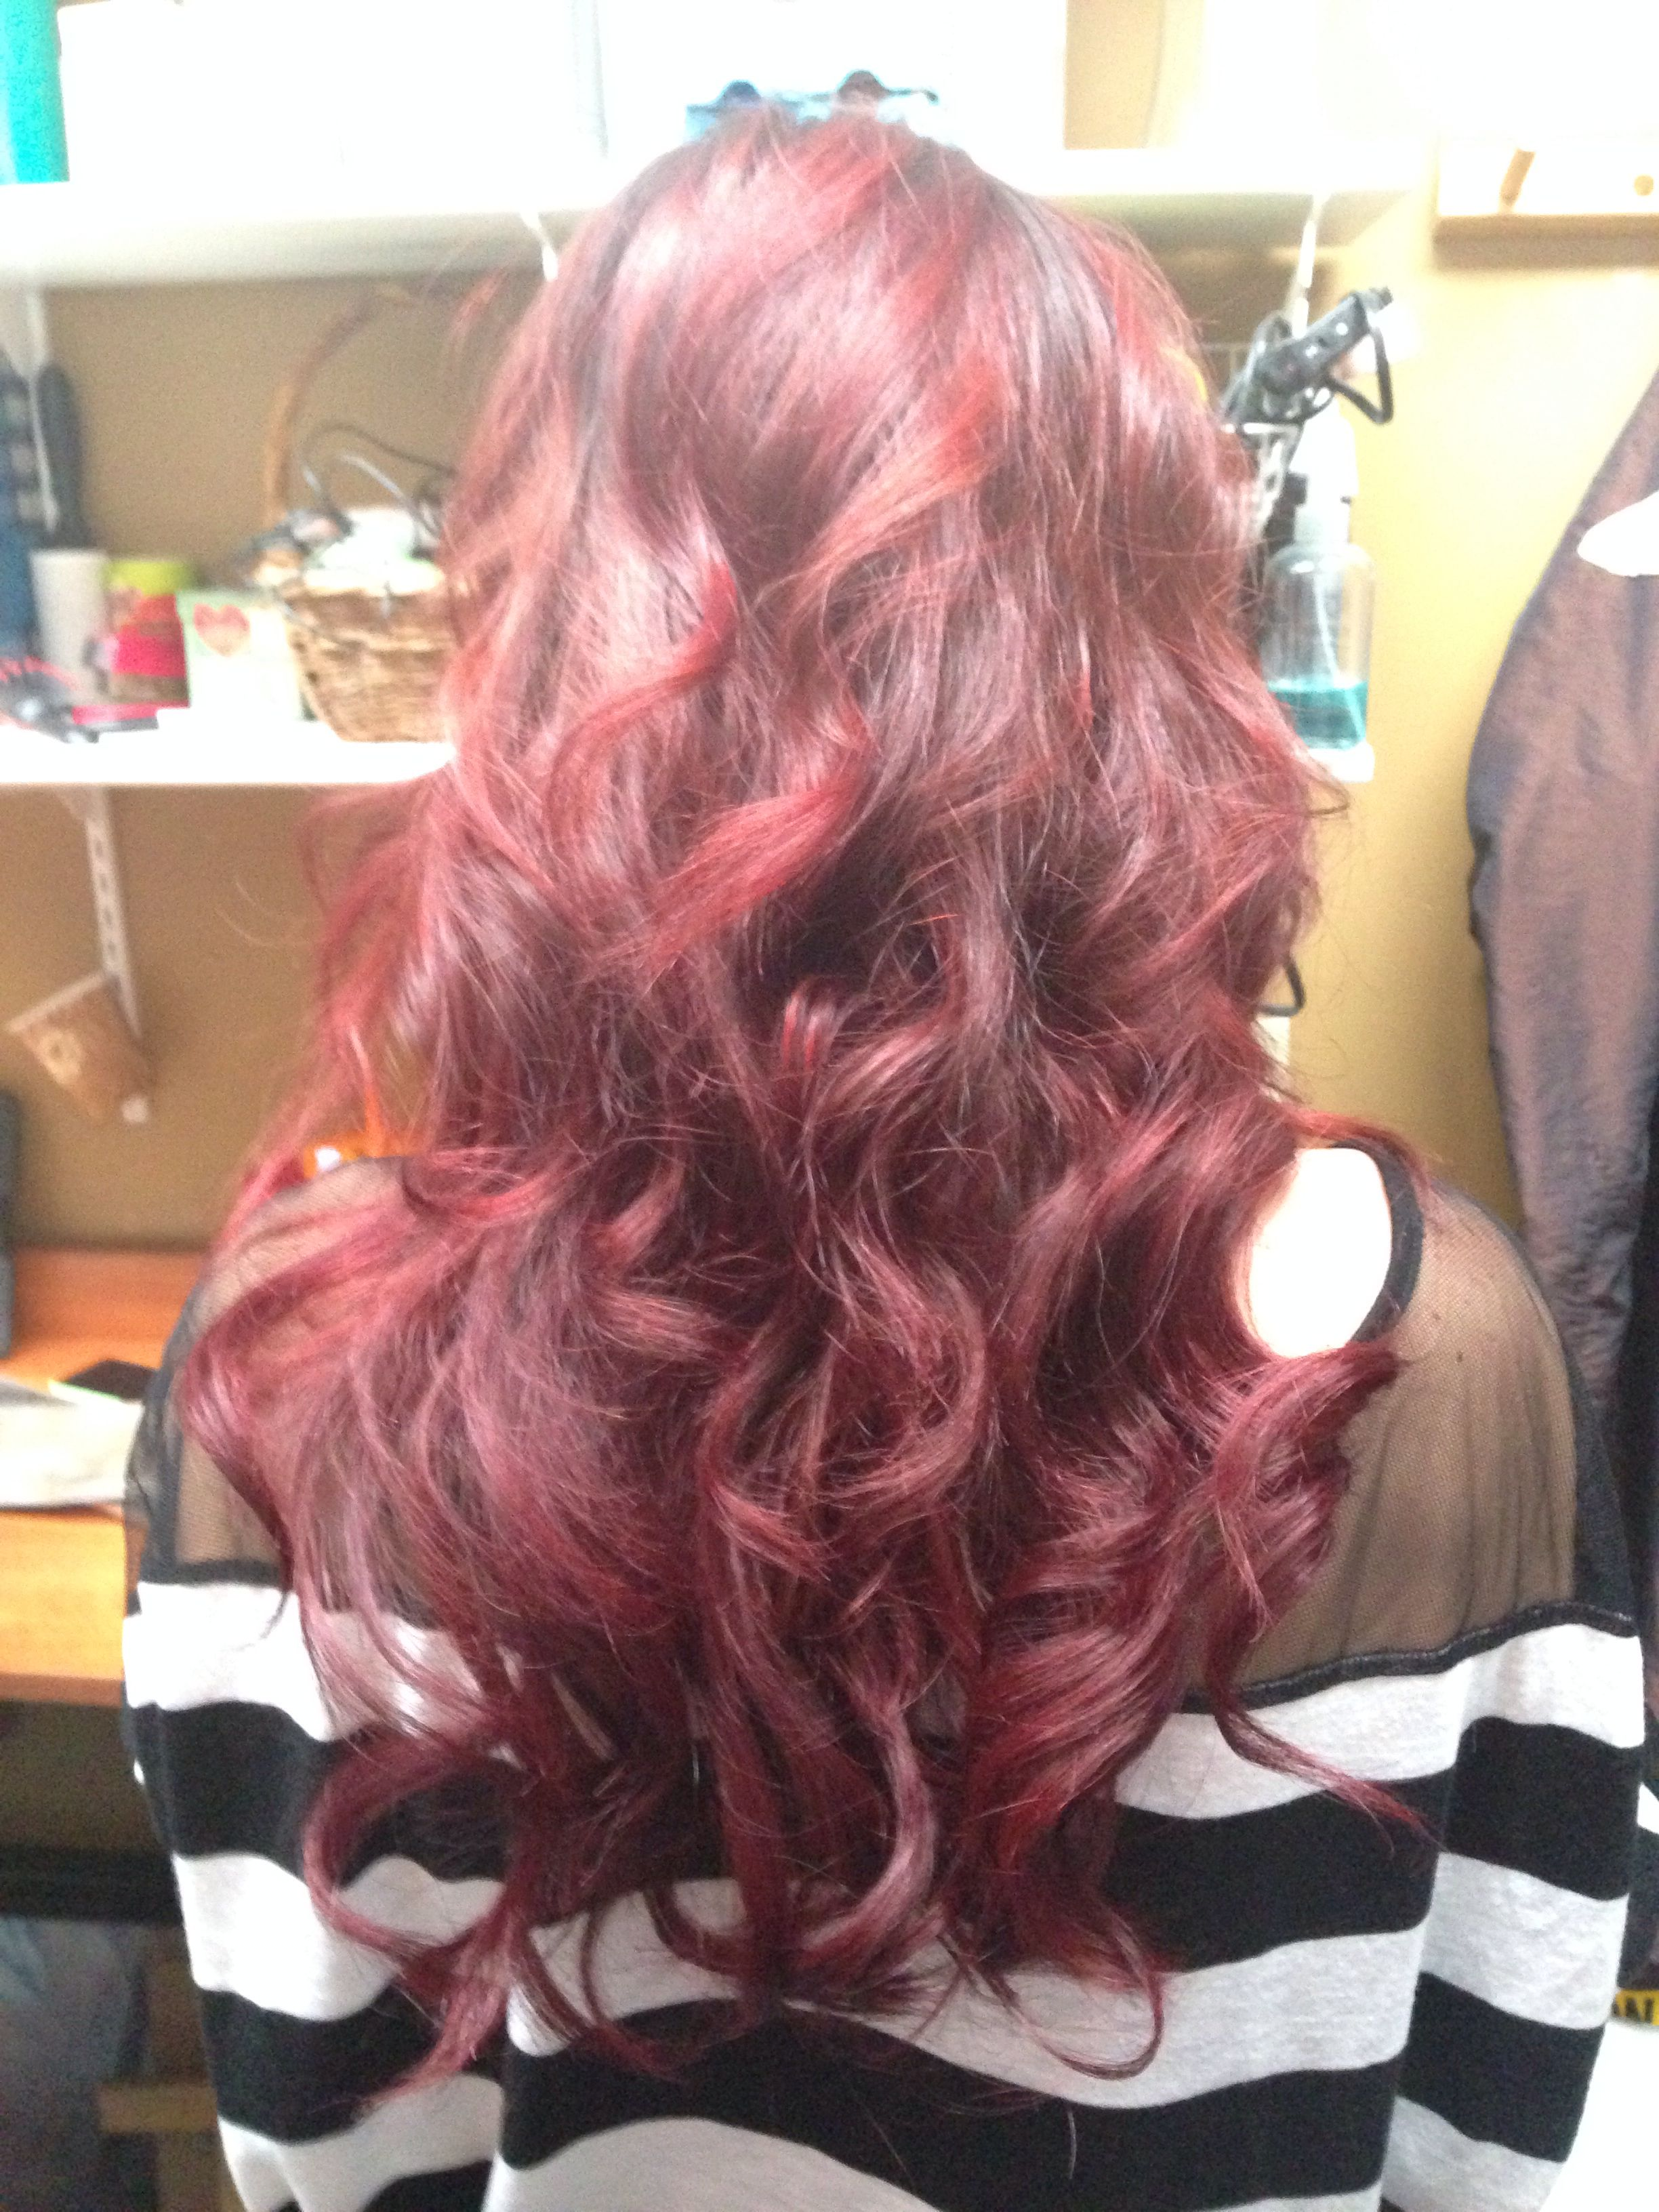 Red Hair Extensions Hair By Sarah Mascara Hairstylist In